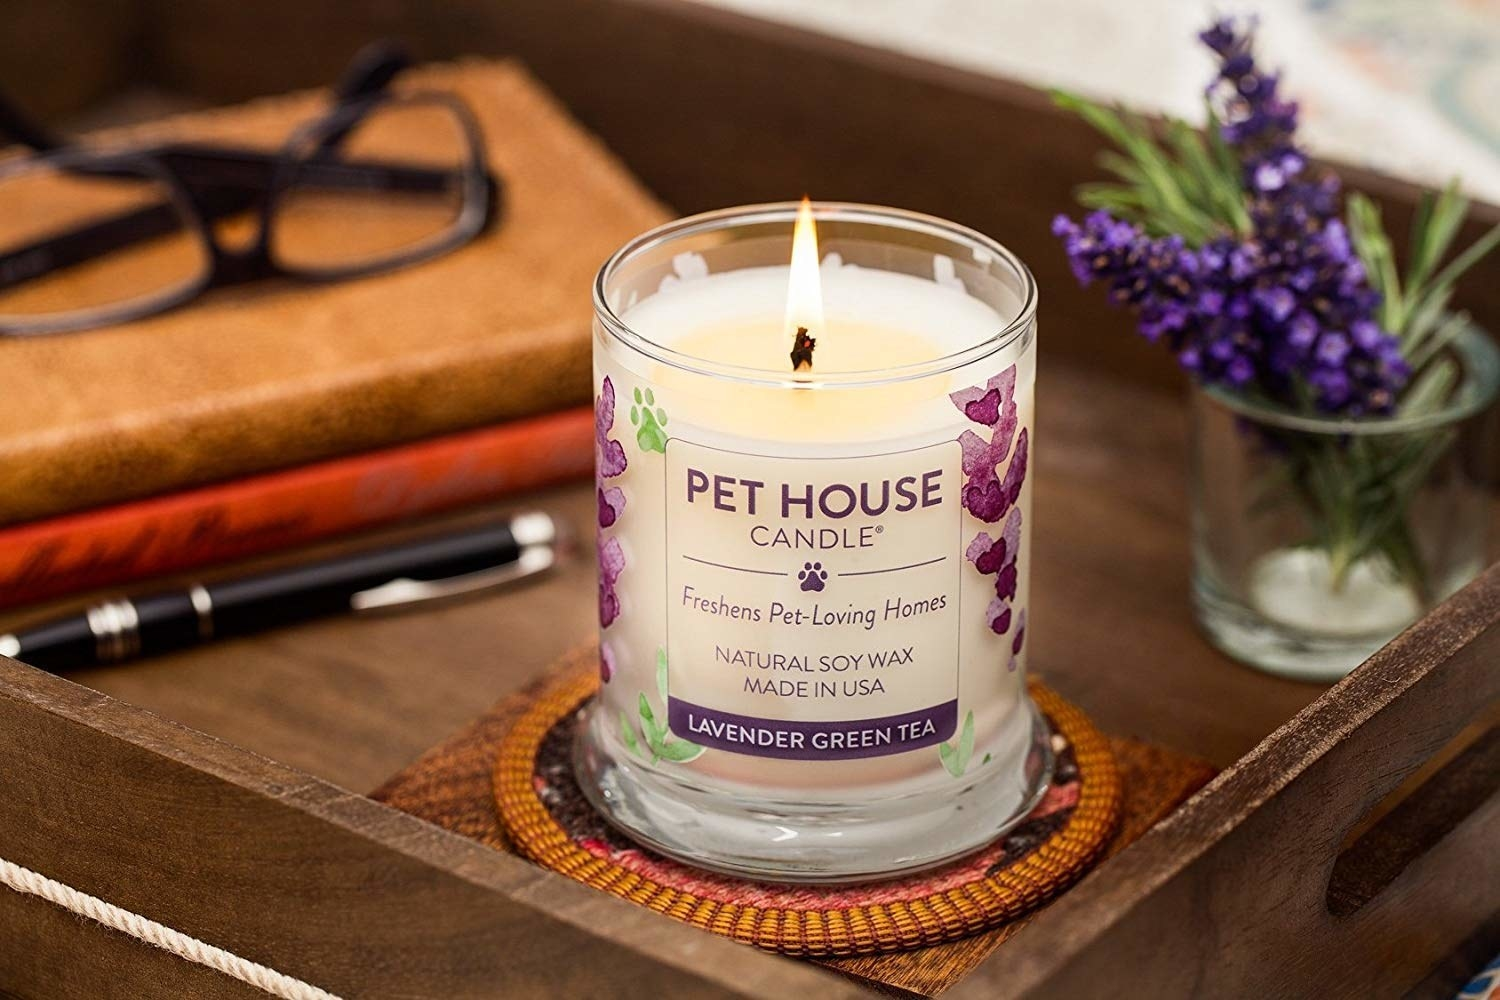 lavender green tea candle sitting on coffee table